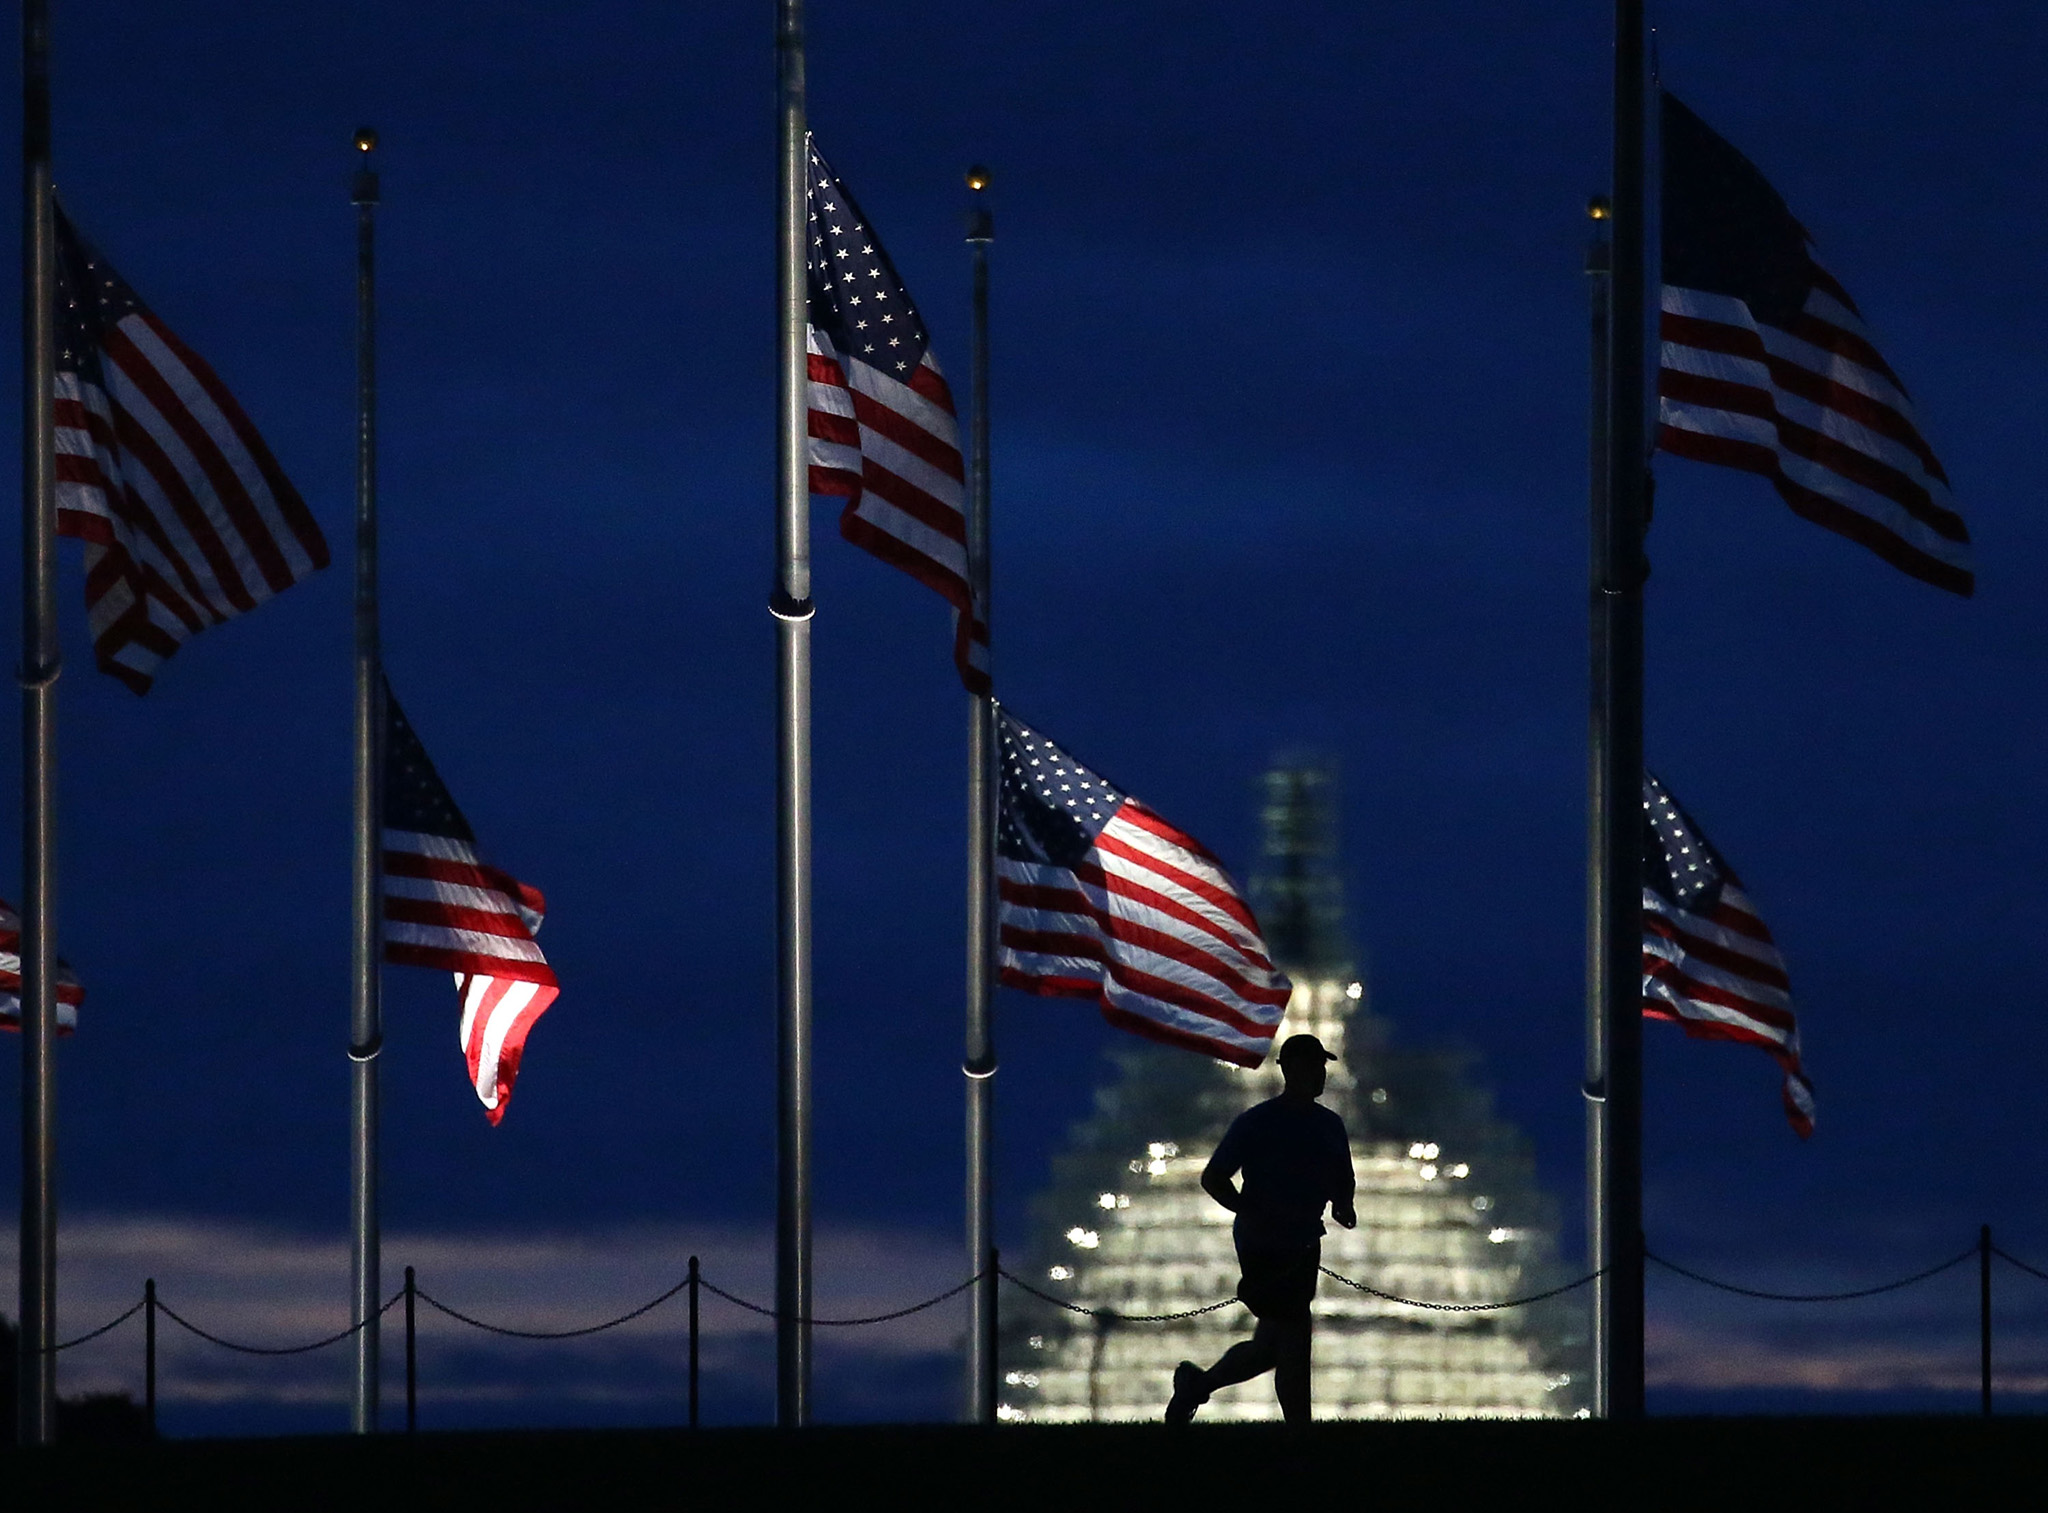 President Obama, First Lady Hold Moment Of Silence On Anniversary Of 9/11 Attacks...WASHINGTON, DC - SEPTEMBER 11:  A man jogs past a row of American flags that have been lowered to half staff on the Washington Monument grounds, near the US Capitol on September 11, 2015 in Washington, DC. Today marks the fourteenth anniversary of the September 11, 2001 attacks when terroristists high jacked airliners and flew them in the World Trade Center and the Pentagon.  (Photo by Mark Wilson/Getty Images)